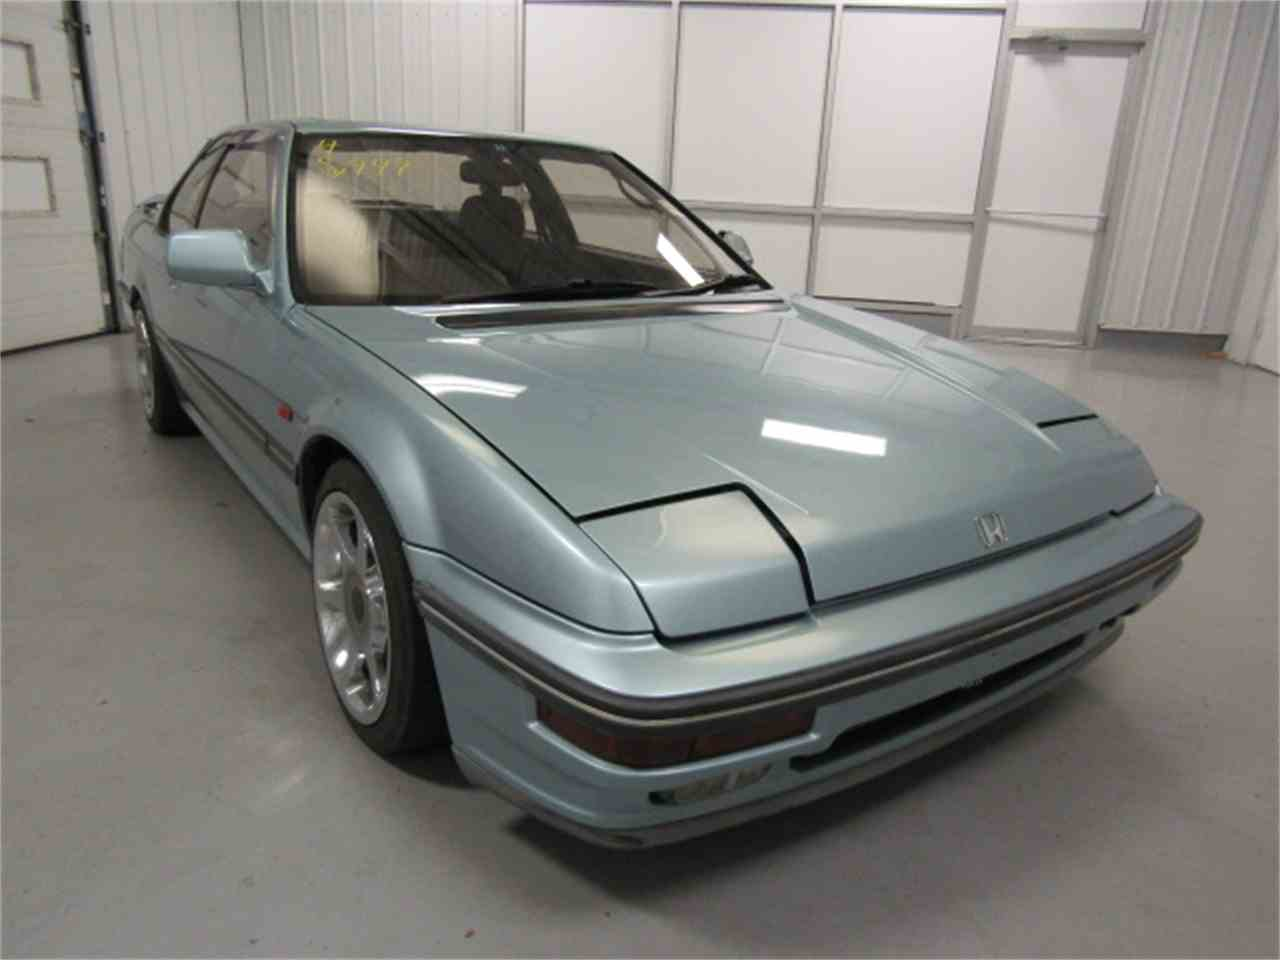 1988 Honda Prelude for Sale - CC-915084